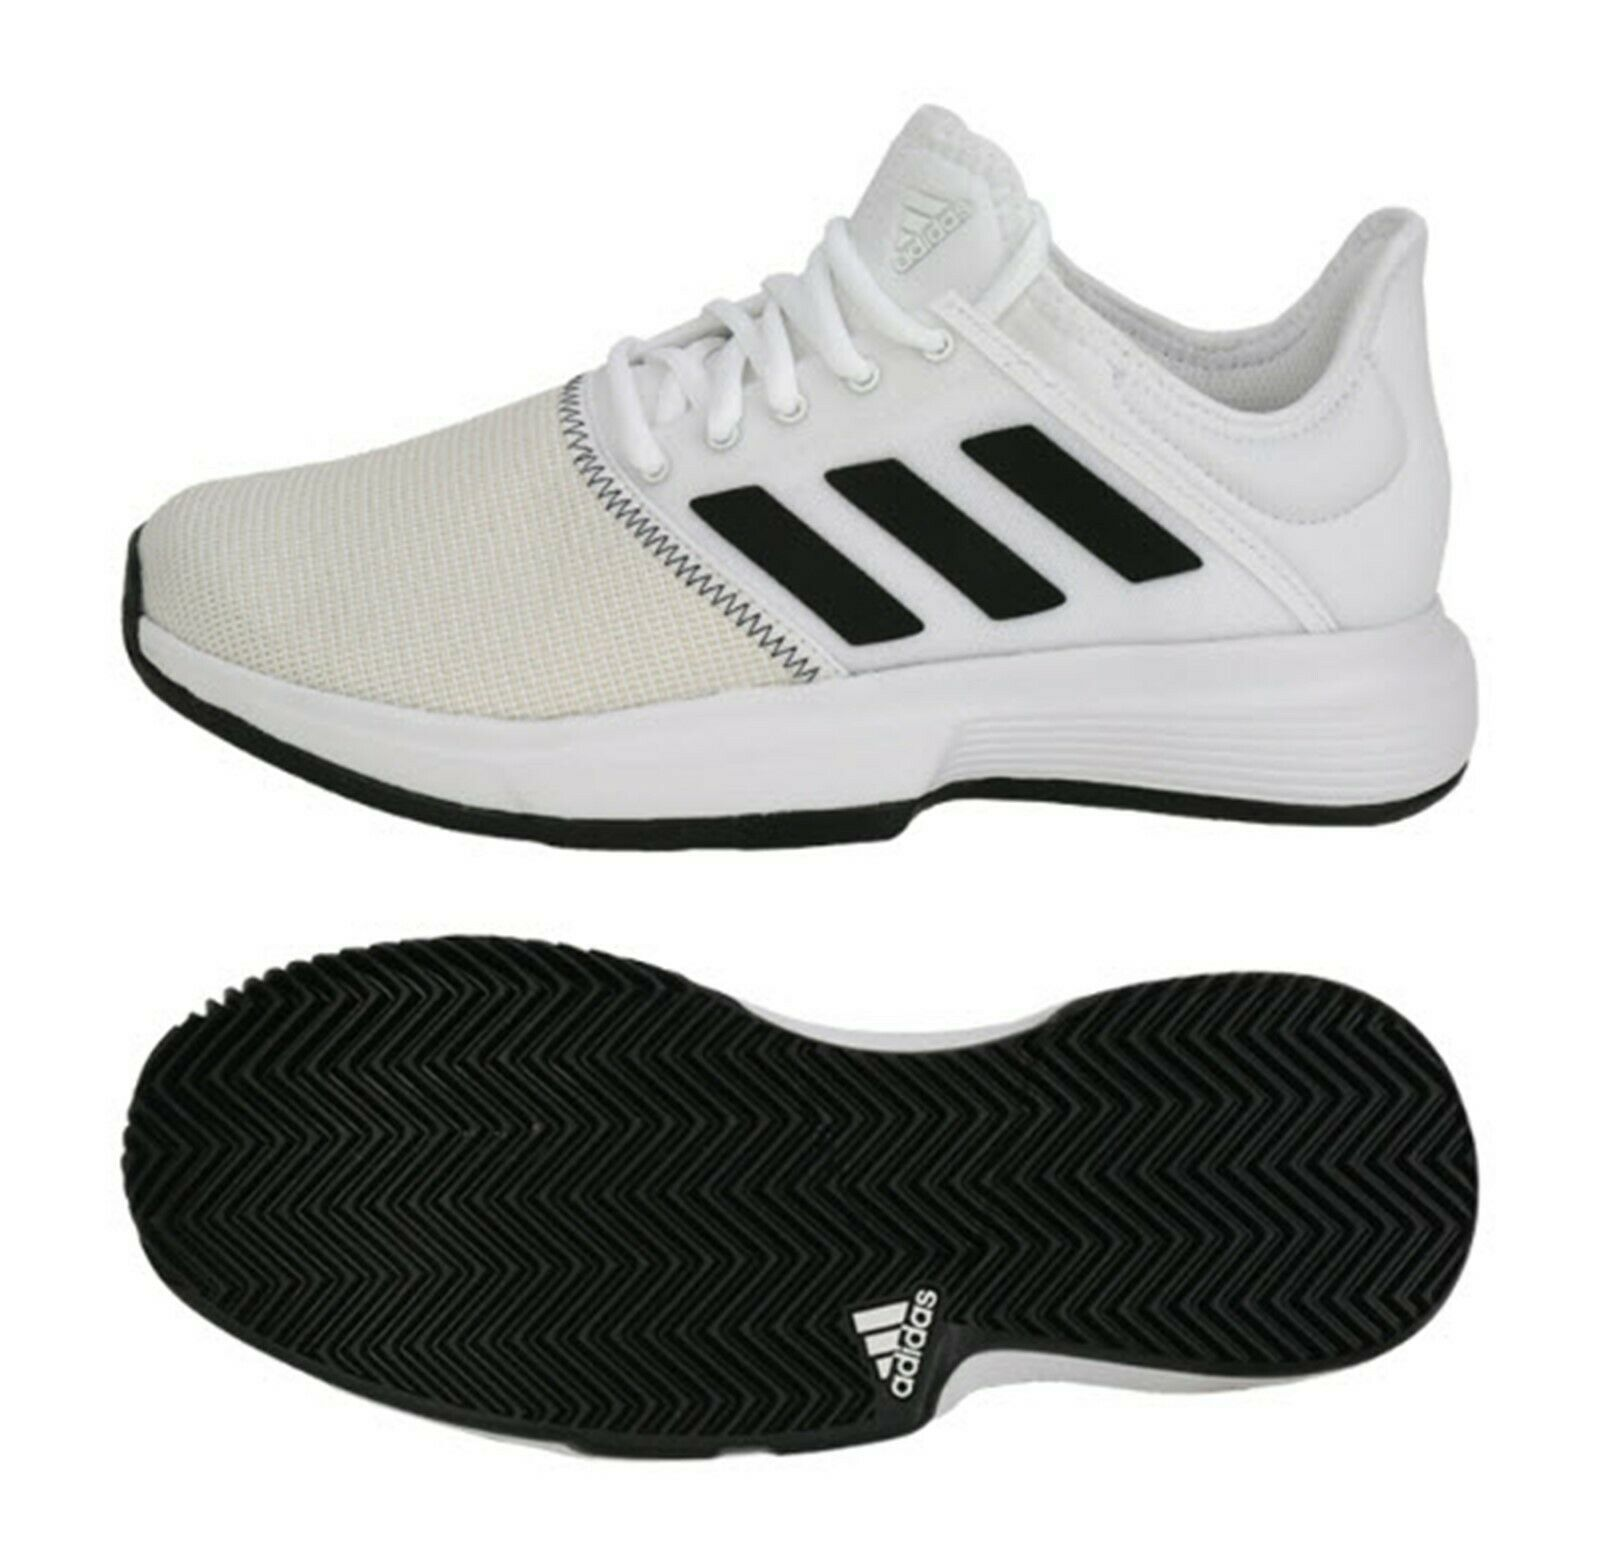 Adidas Hommes Game Court Tennis chaussures FonctionneHommest blanc Training paniers chaussures CG6336